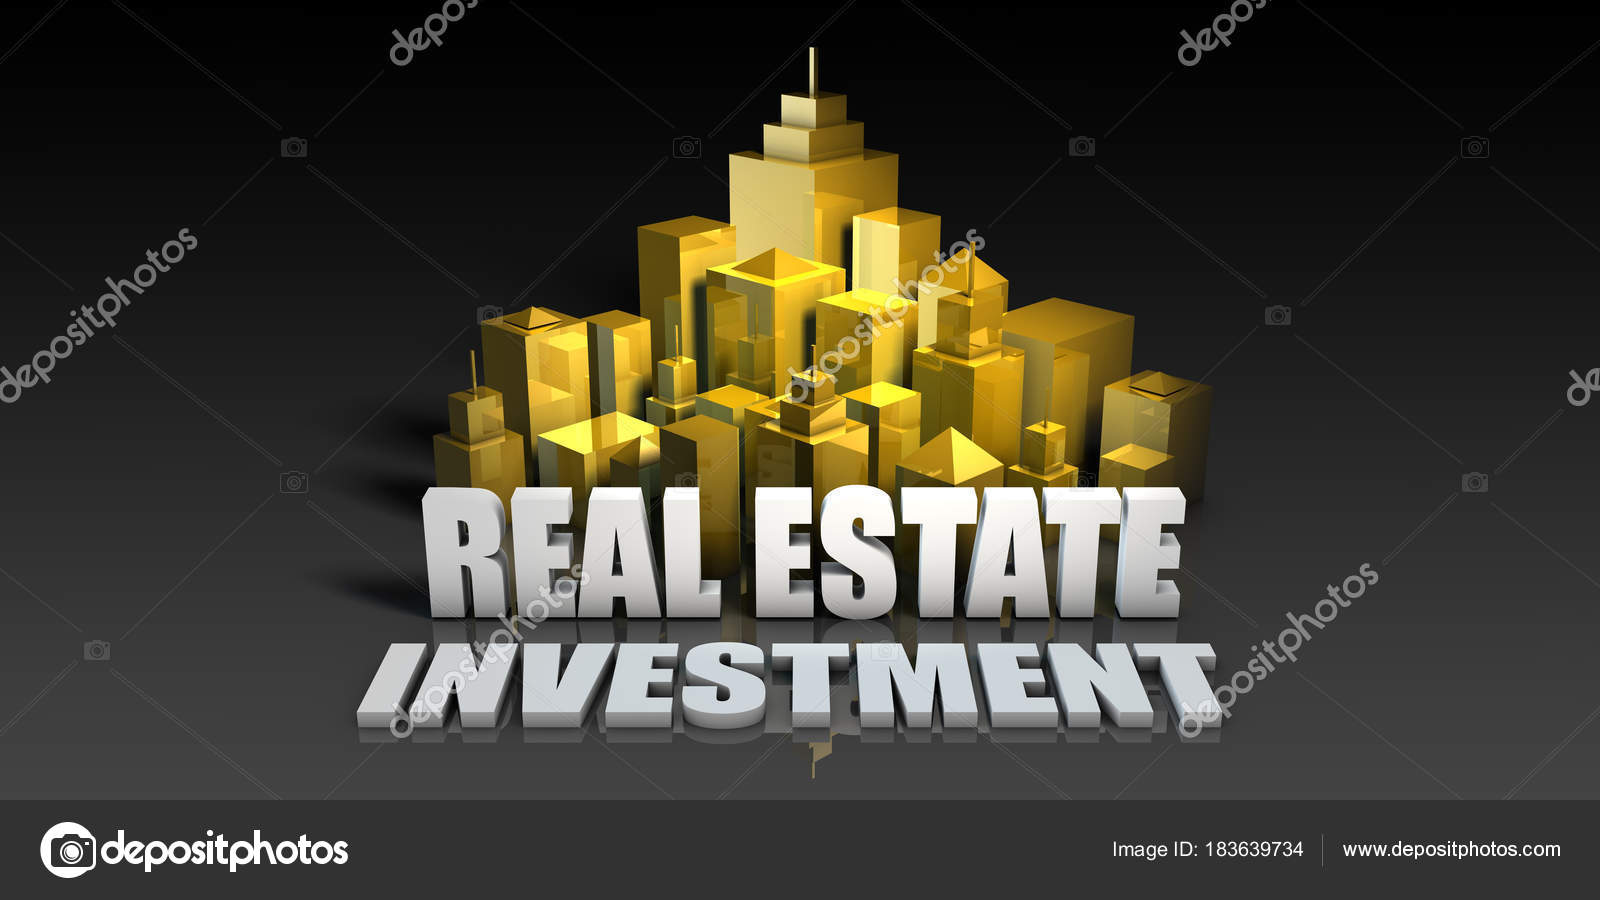 Investment Wallpaper Hd Real Estate Investment Stock Photo C Kentoh 183639734